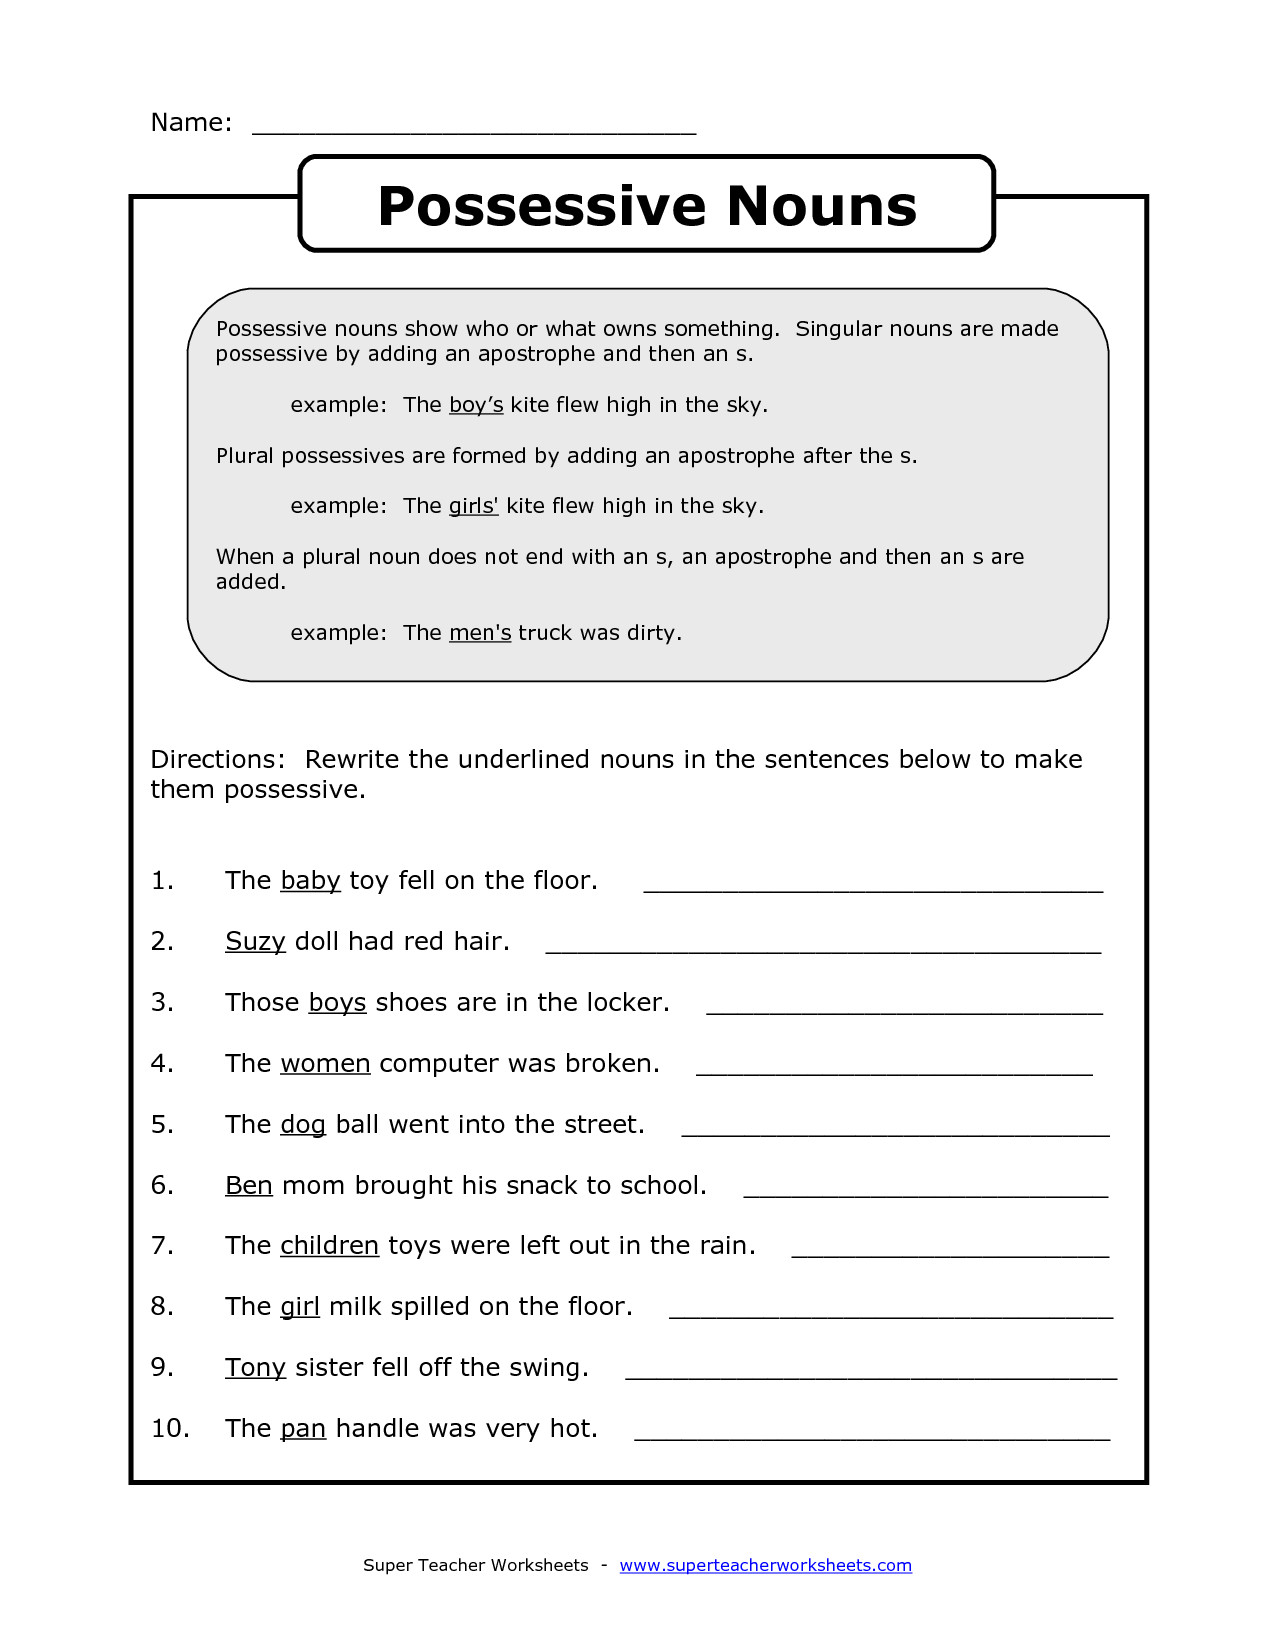 Possessive Nouns Worksheets 2nd Grade Possessive Nouns Worksheets Elementary